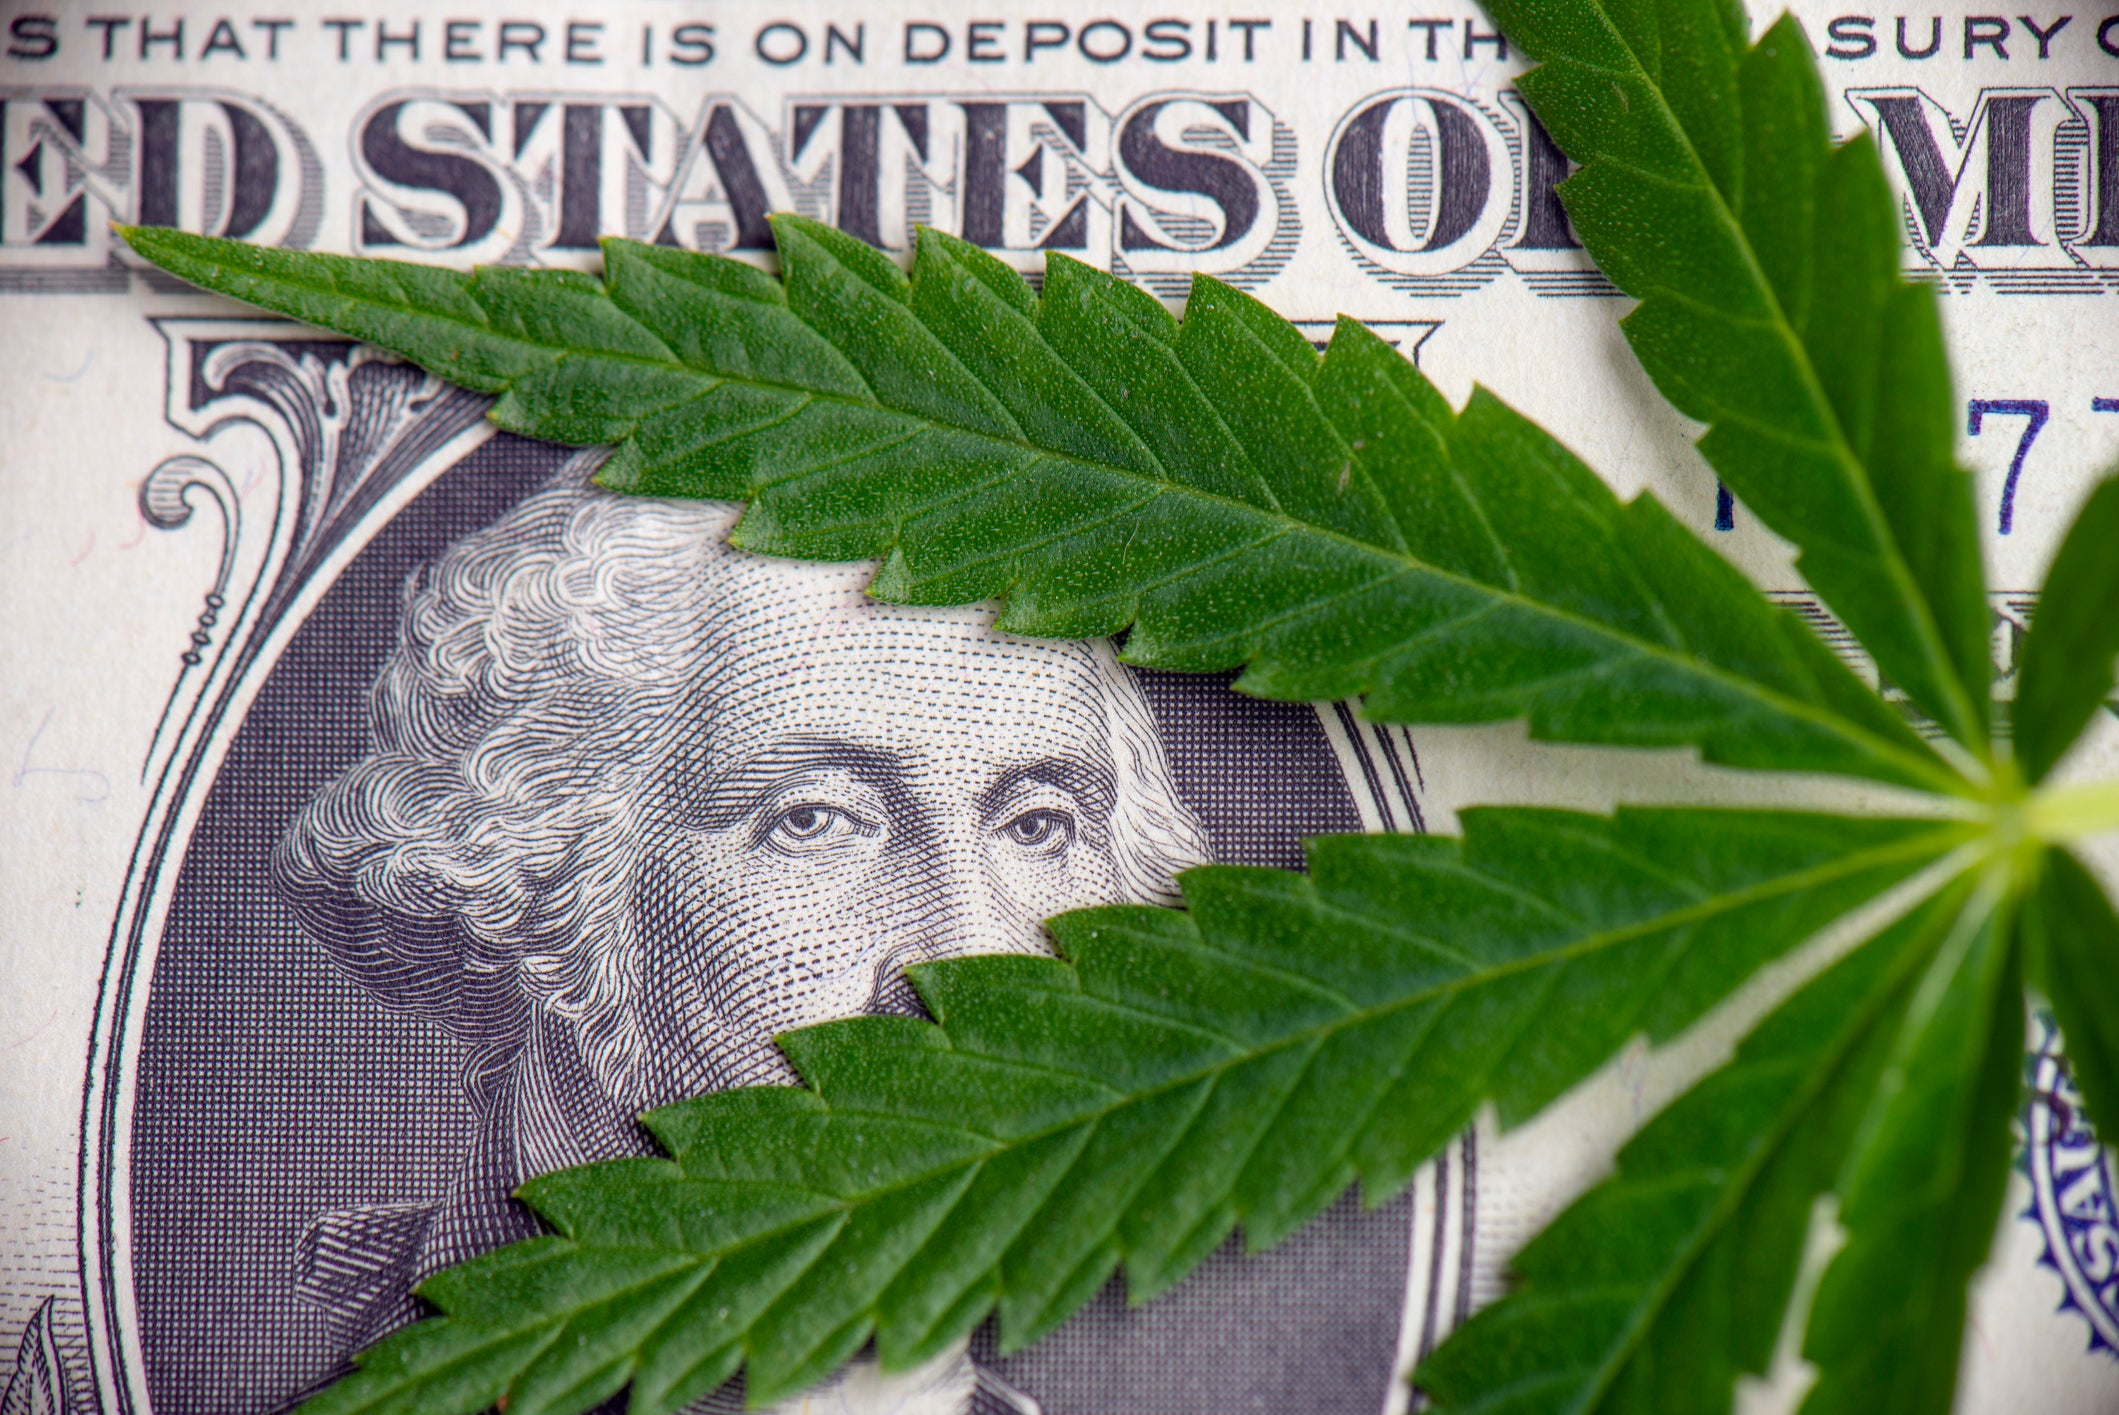 Better Cannabis Play: GW Pharmaceuticals vs. Innovative Industrial Properties | The Motley Fool